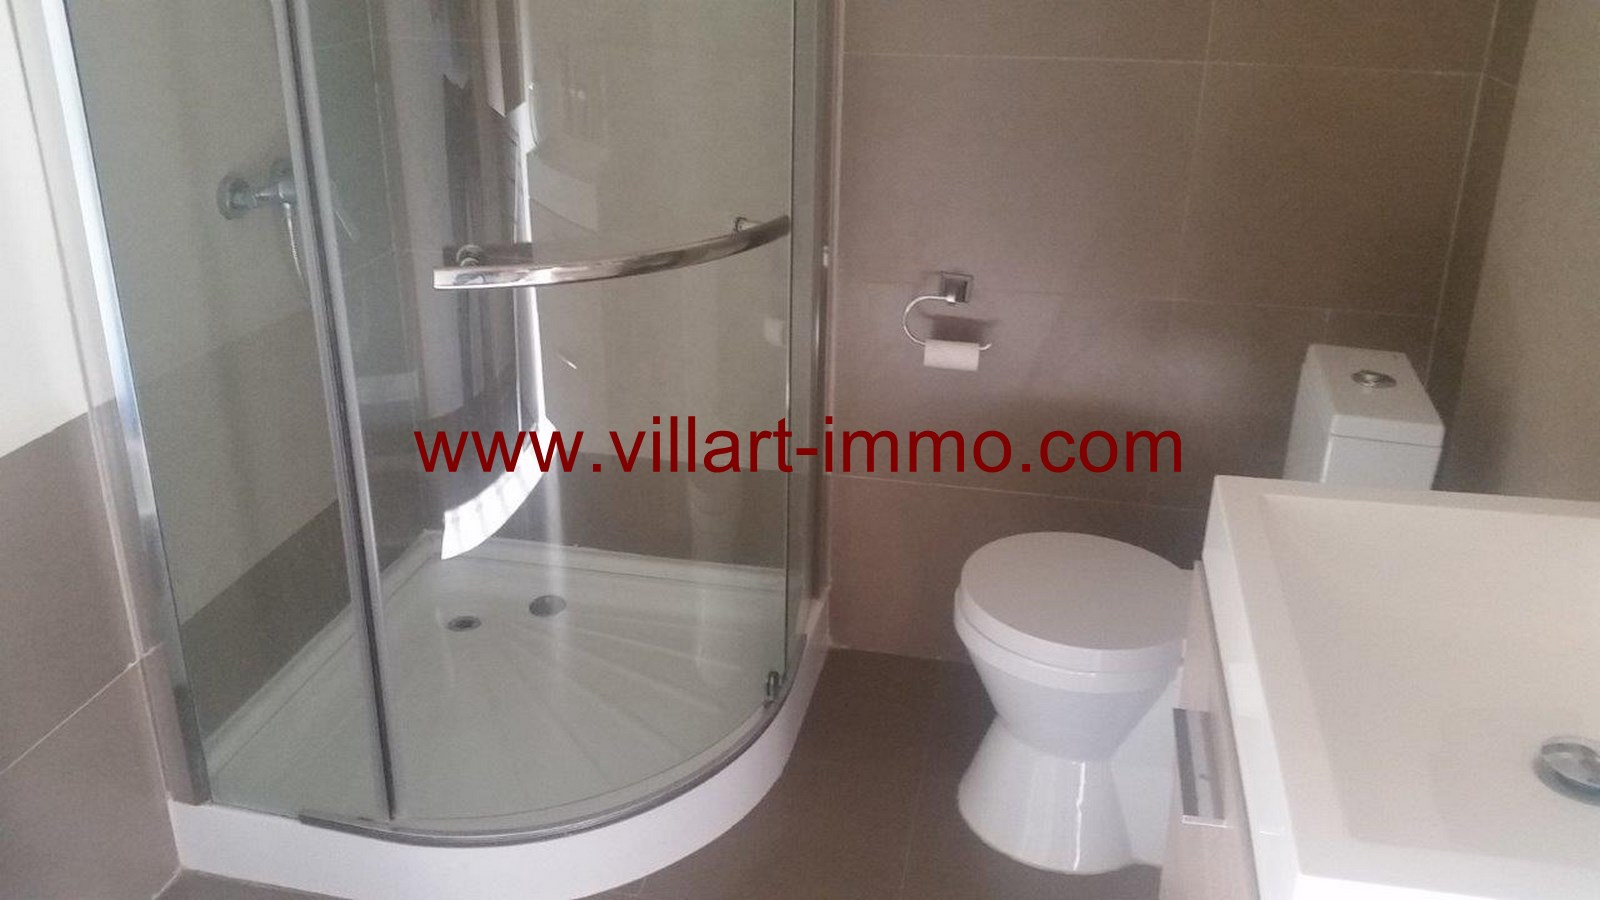 5-To Let-Villa-Furnished-Tangier-Bathroom-LSTV986-Villart Immo